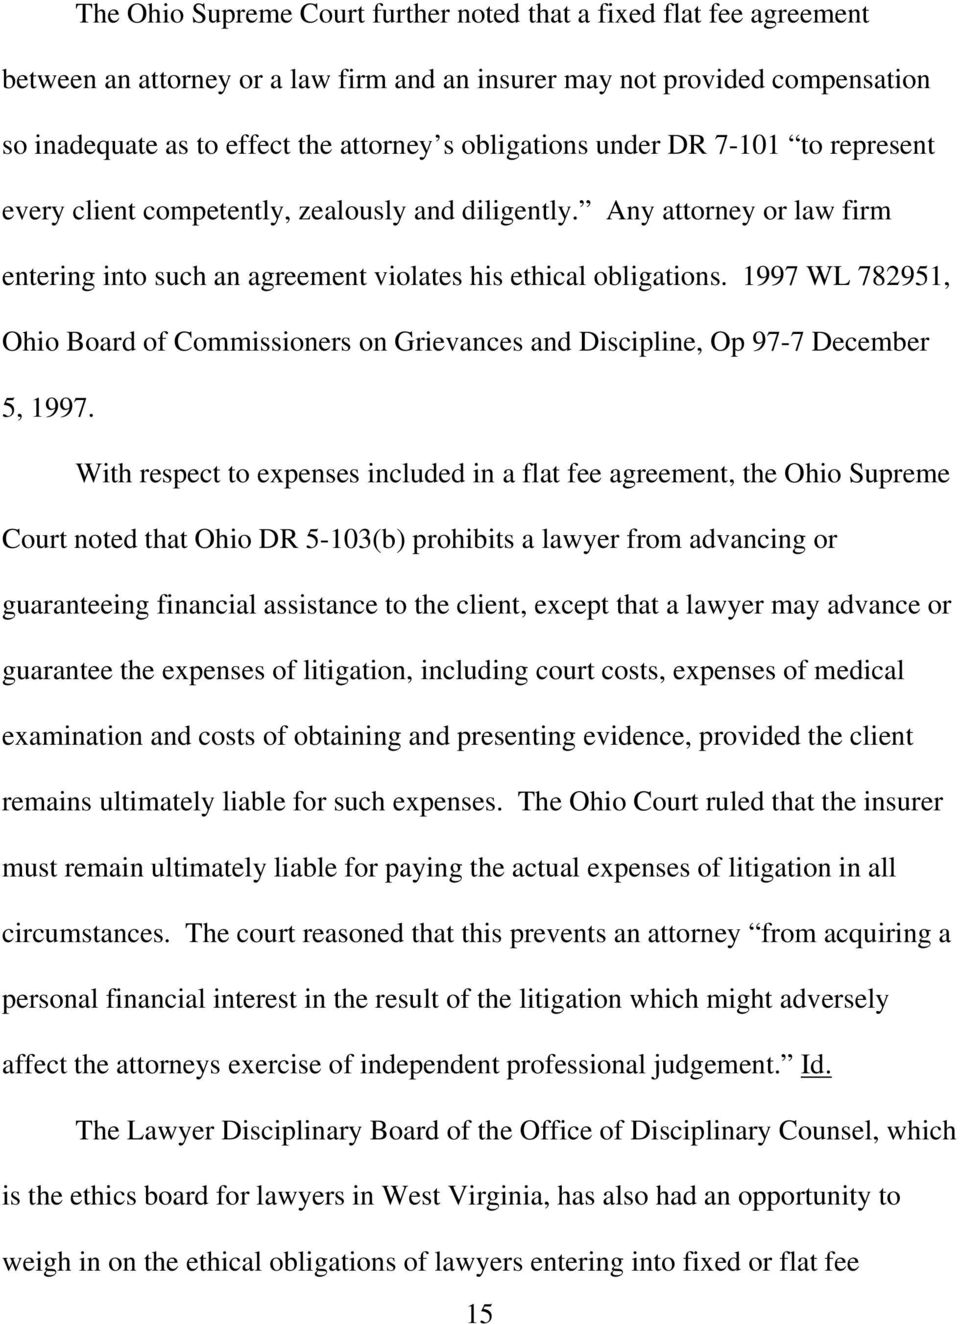 1997 WL 782951, Ohio Board of Commissioners on Grievances and Discipline, Op 97-7 December 5, 1997.